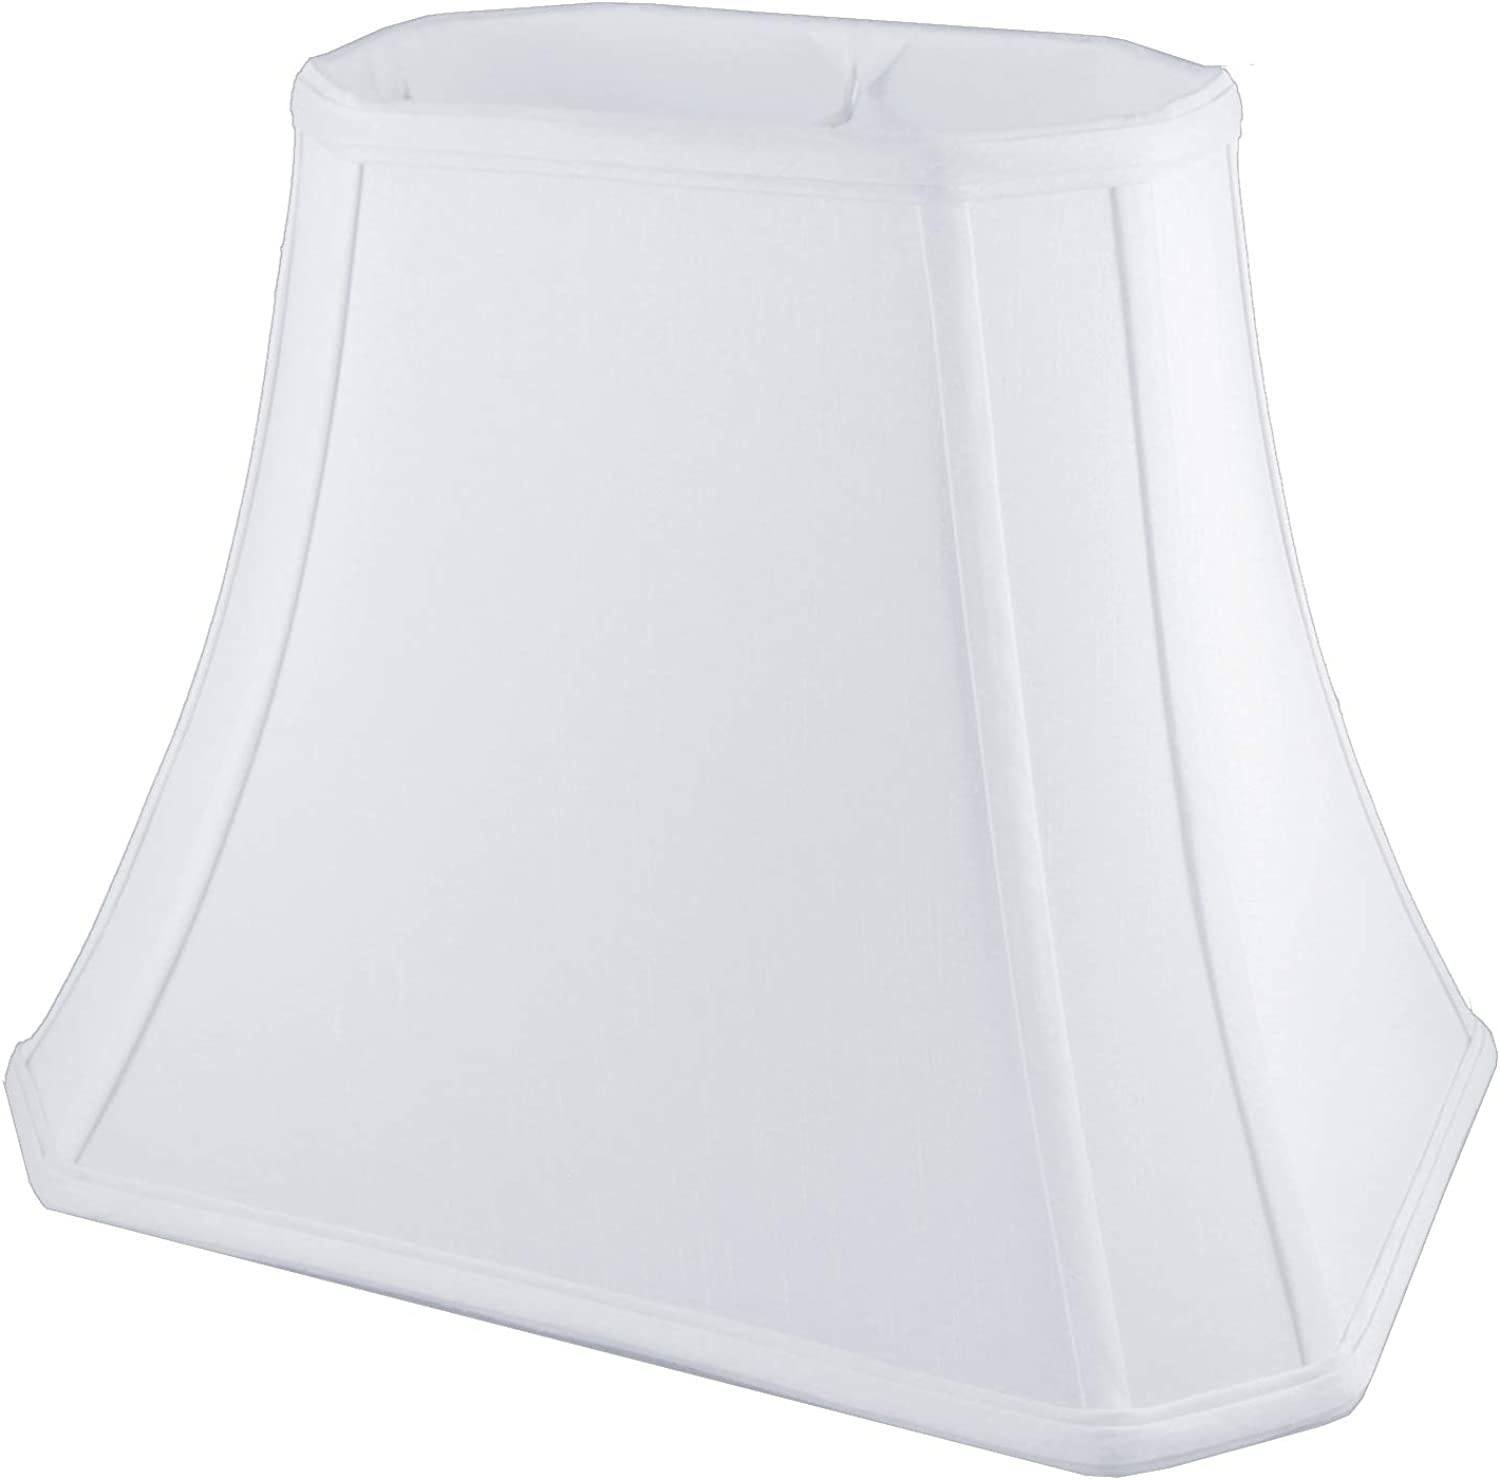 American Pride (5.5 x8.5 ) x (10.5 x15 ) x 11.25  Rectangle Soft Shantung Tailored Lampshade, White